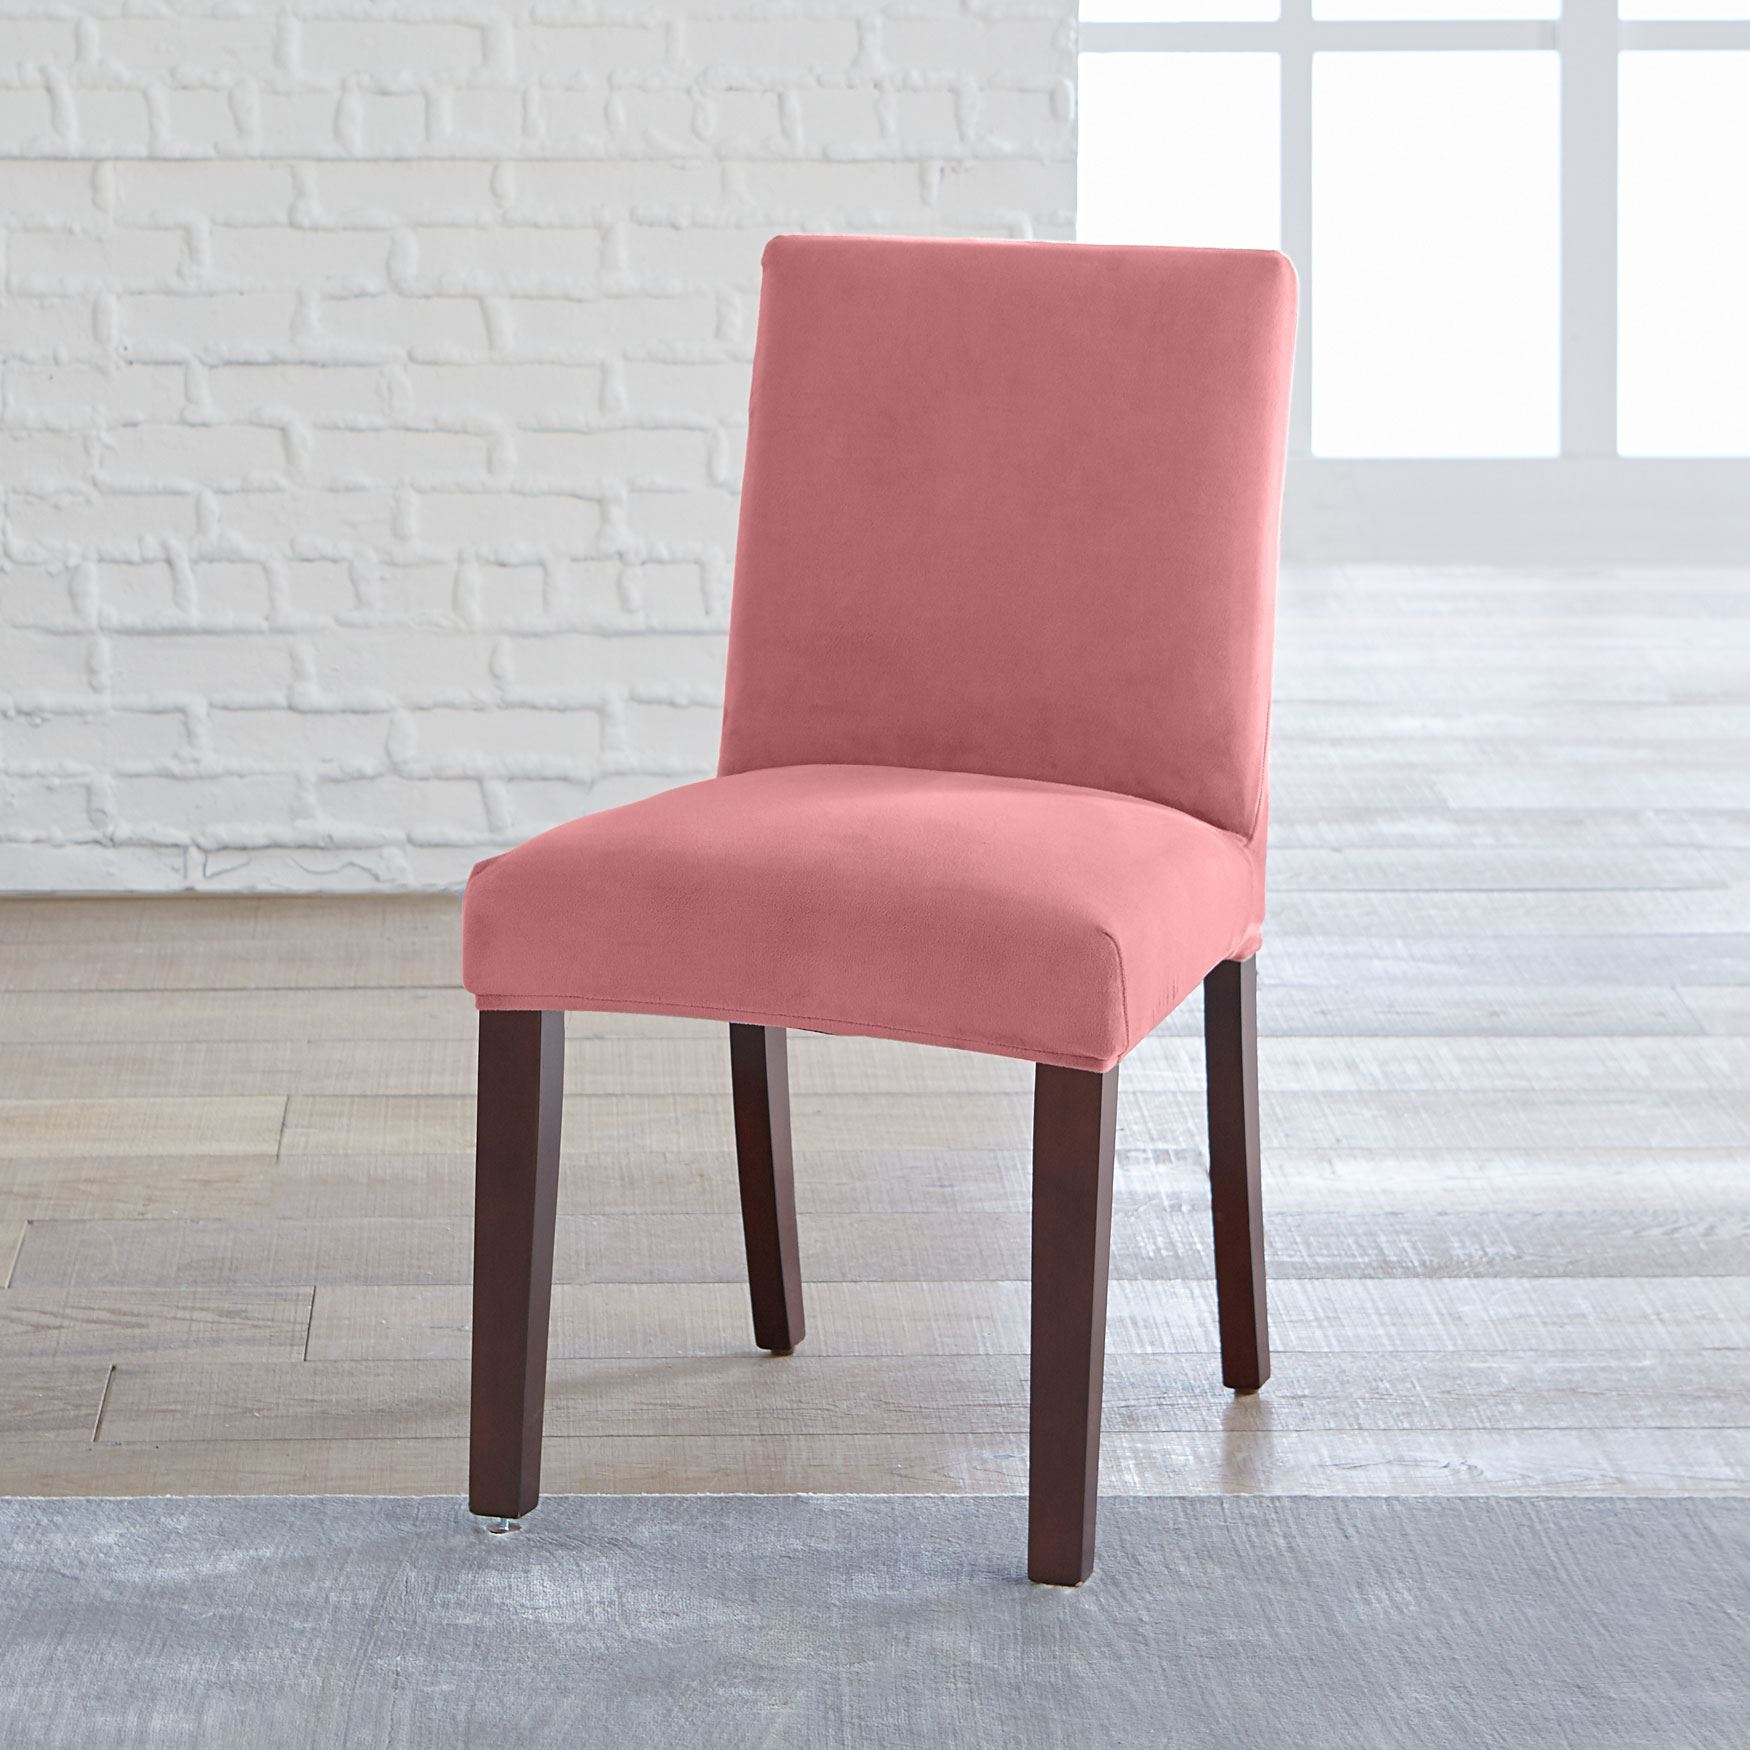 BrylaneHome® Studio Vera Stretch Velvet Dining Chair Slipcover, ROSE